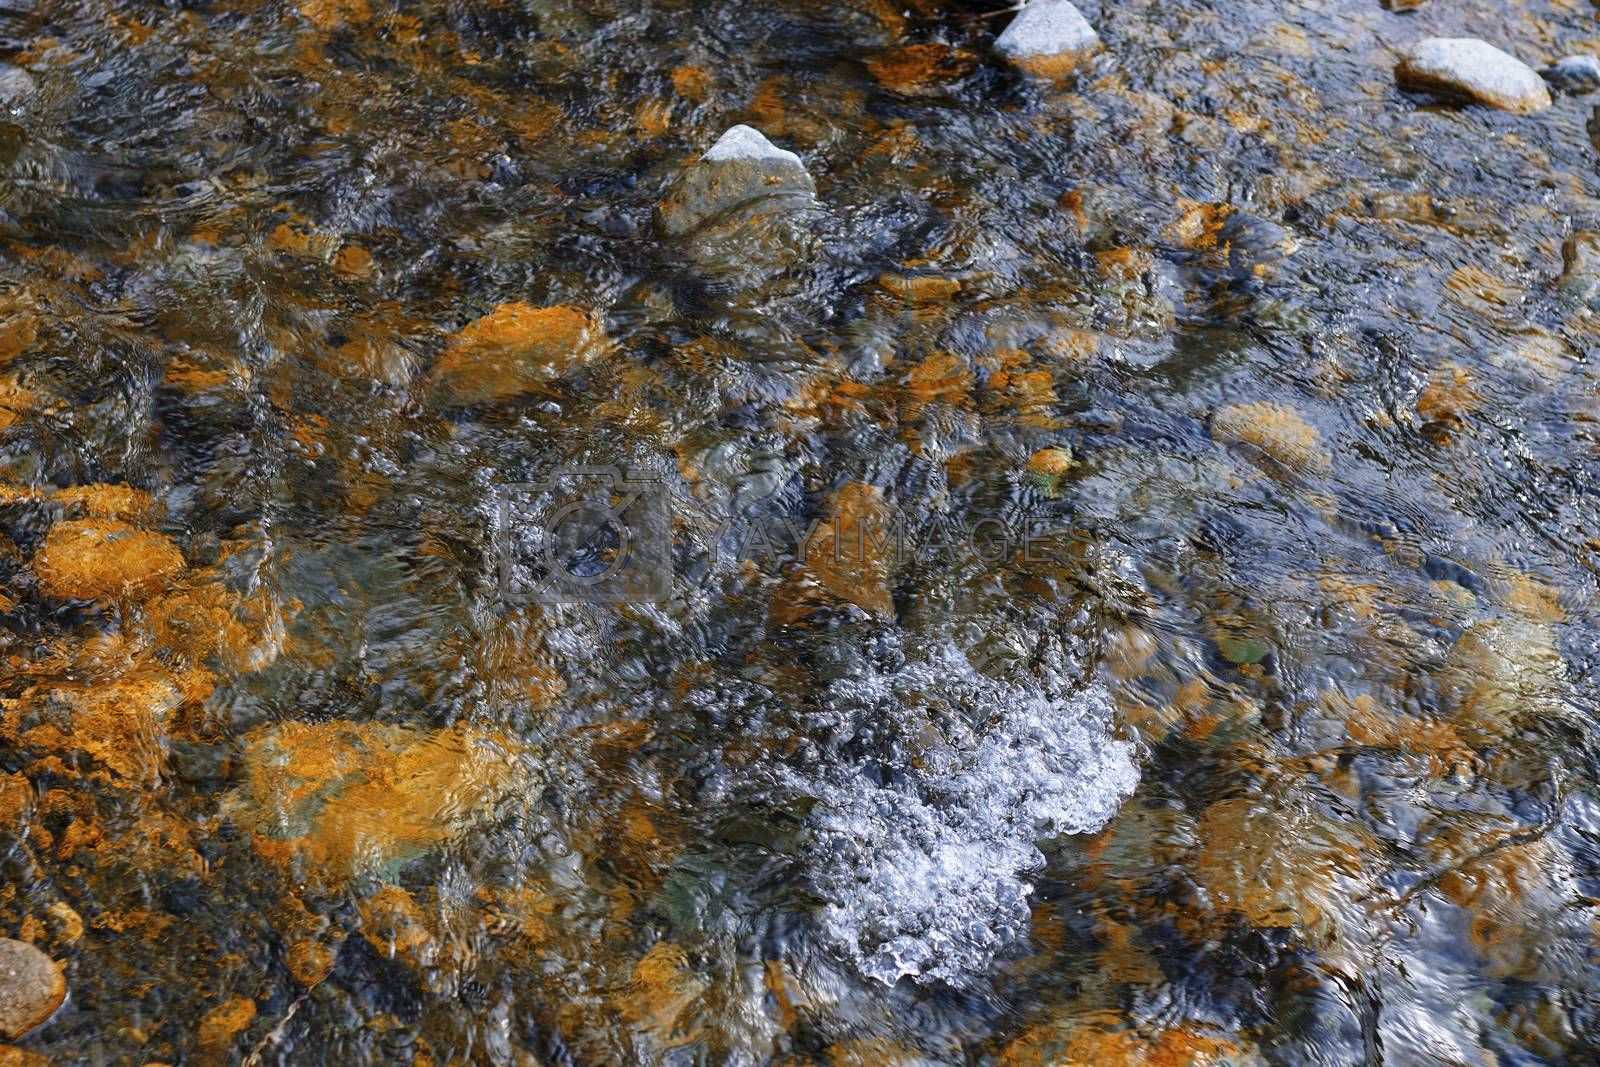 River bed with rocky stones. Kent, England